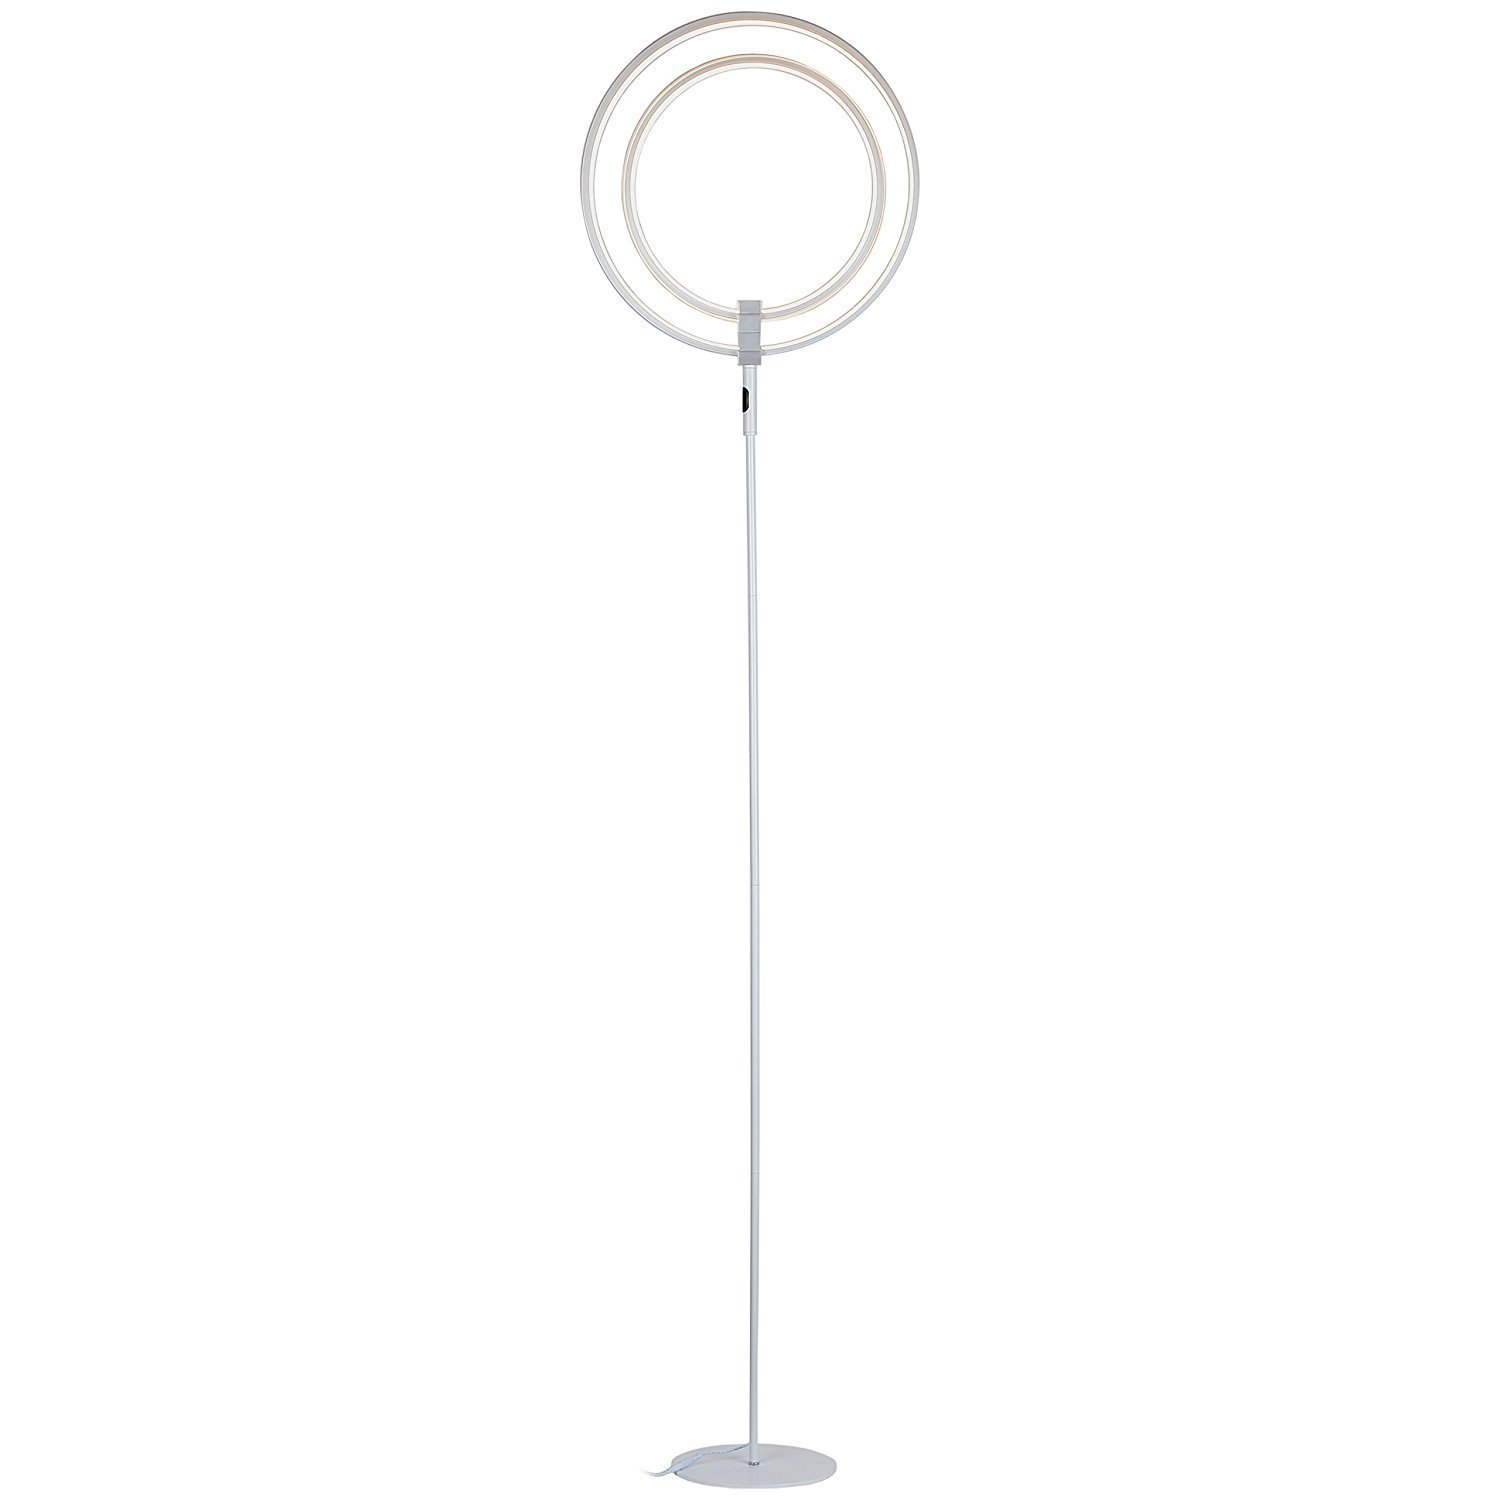 Dimmable Floor Lamp: Brightech – Eclipse LED Floor Lamp – Rings of Light Bring Sci-Fi Ambiance  to Contemporary Spaces – 28 Watts – Dimmable Bright Light…,Lighting